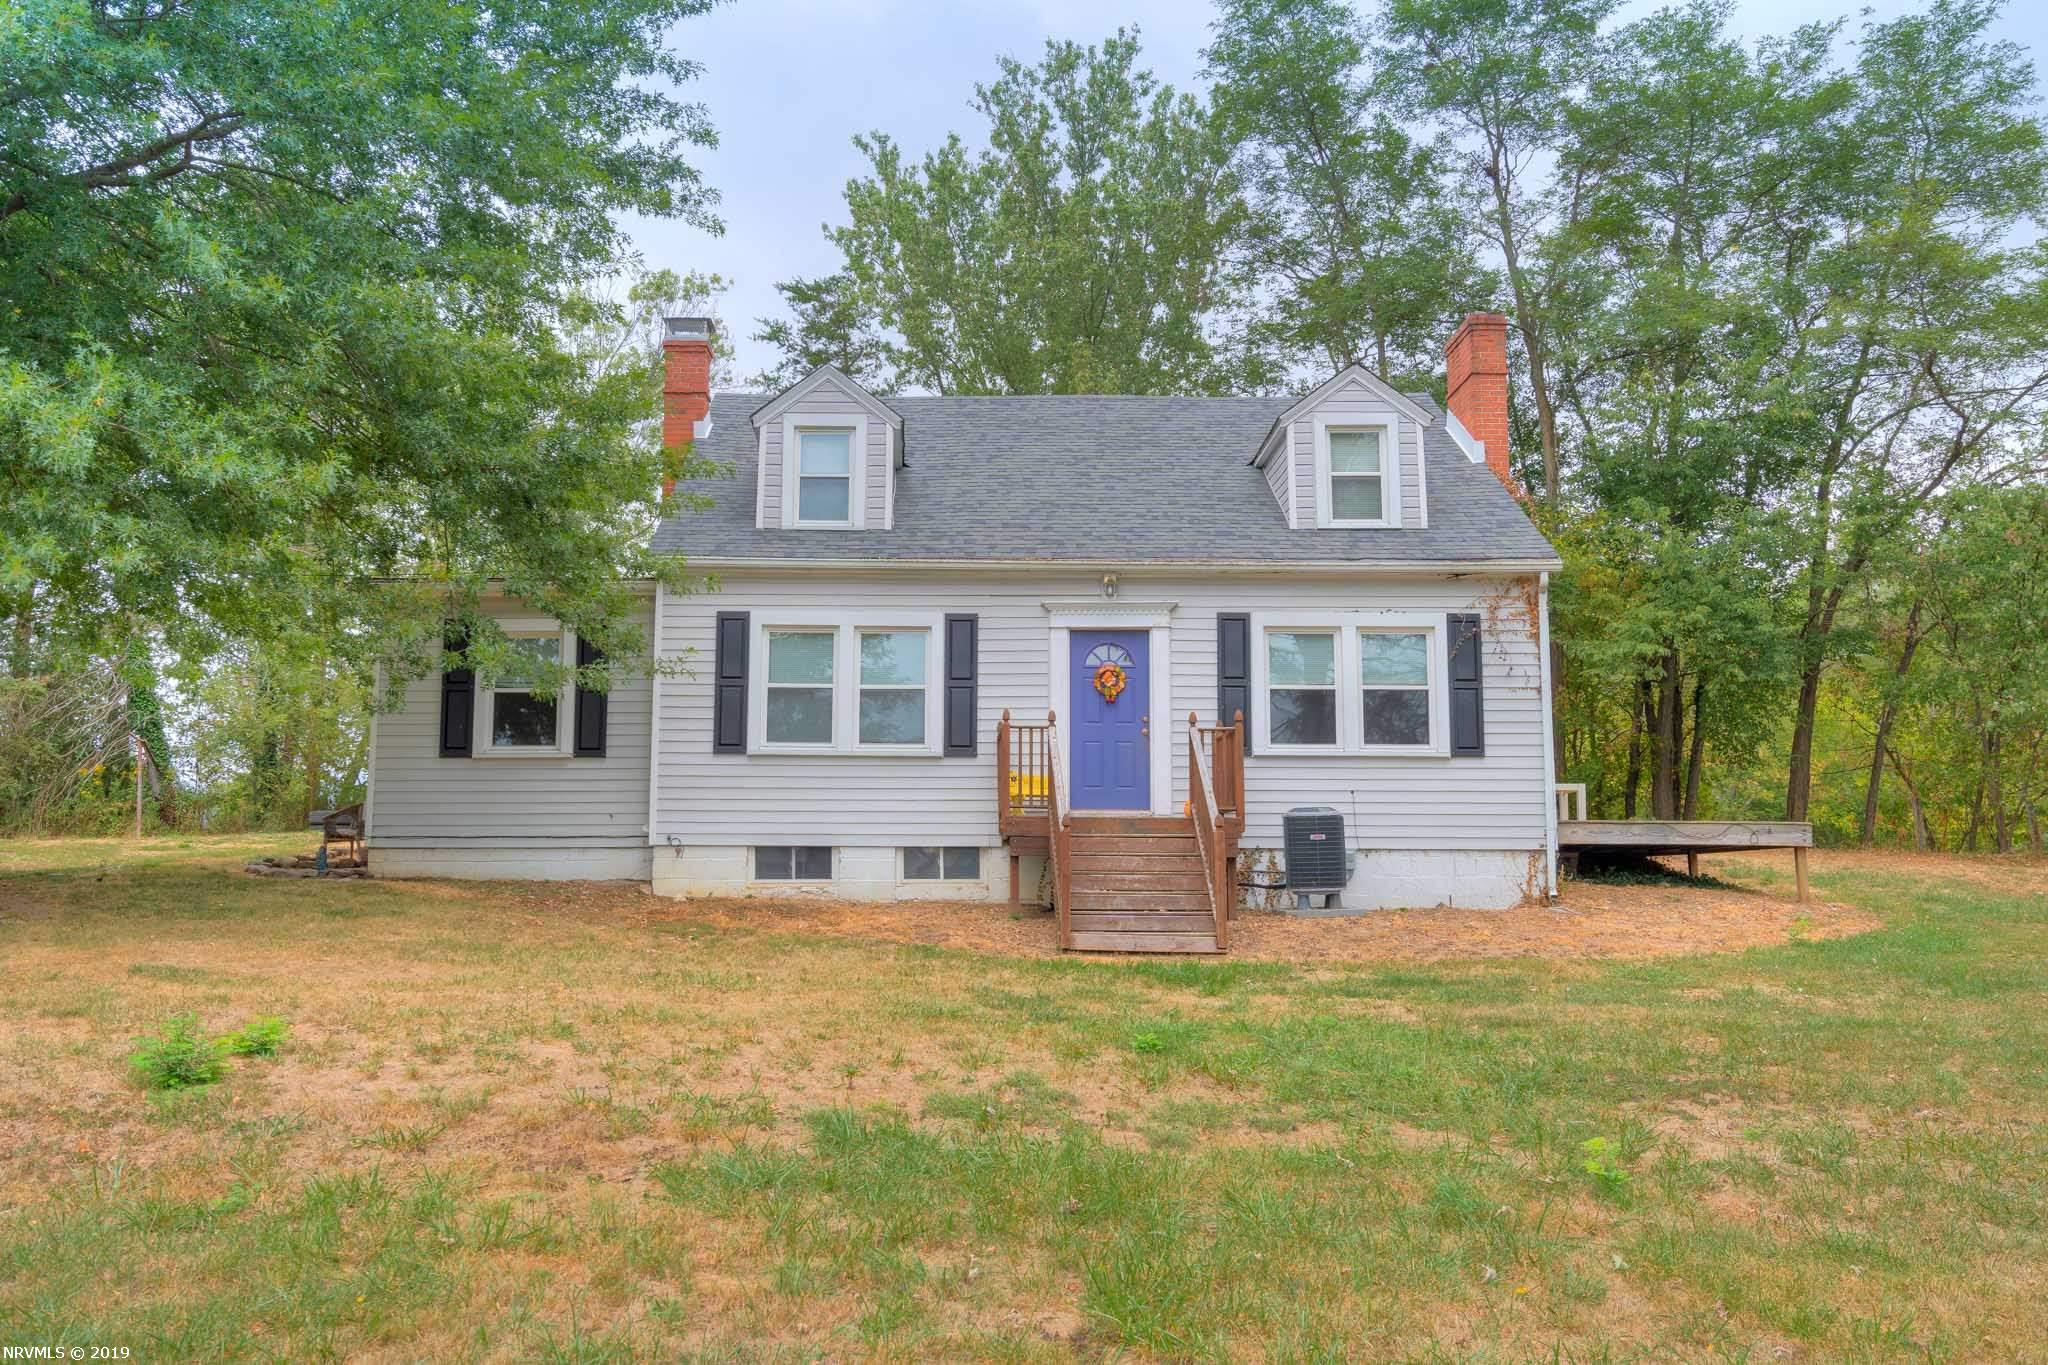 Cape Cod style home, 4 bedrooms 2 full baths, additional half basement with concrete floor unfinished, nice brick fireplace in living room, hardwood floors throughout home, new heat pump, and gorgeous arched doorways and energy efficient windows. Make your appointment today to view this spacious home!